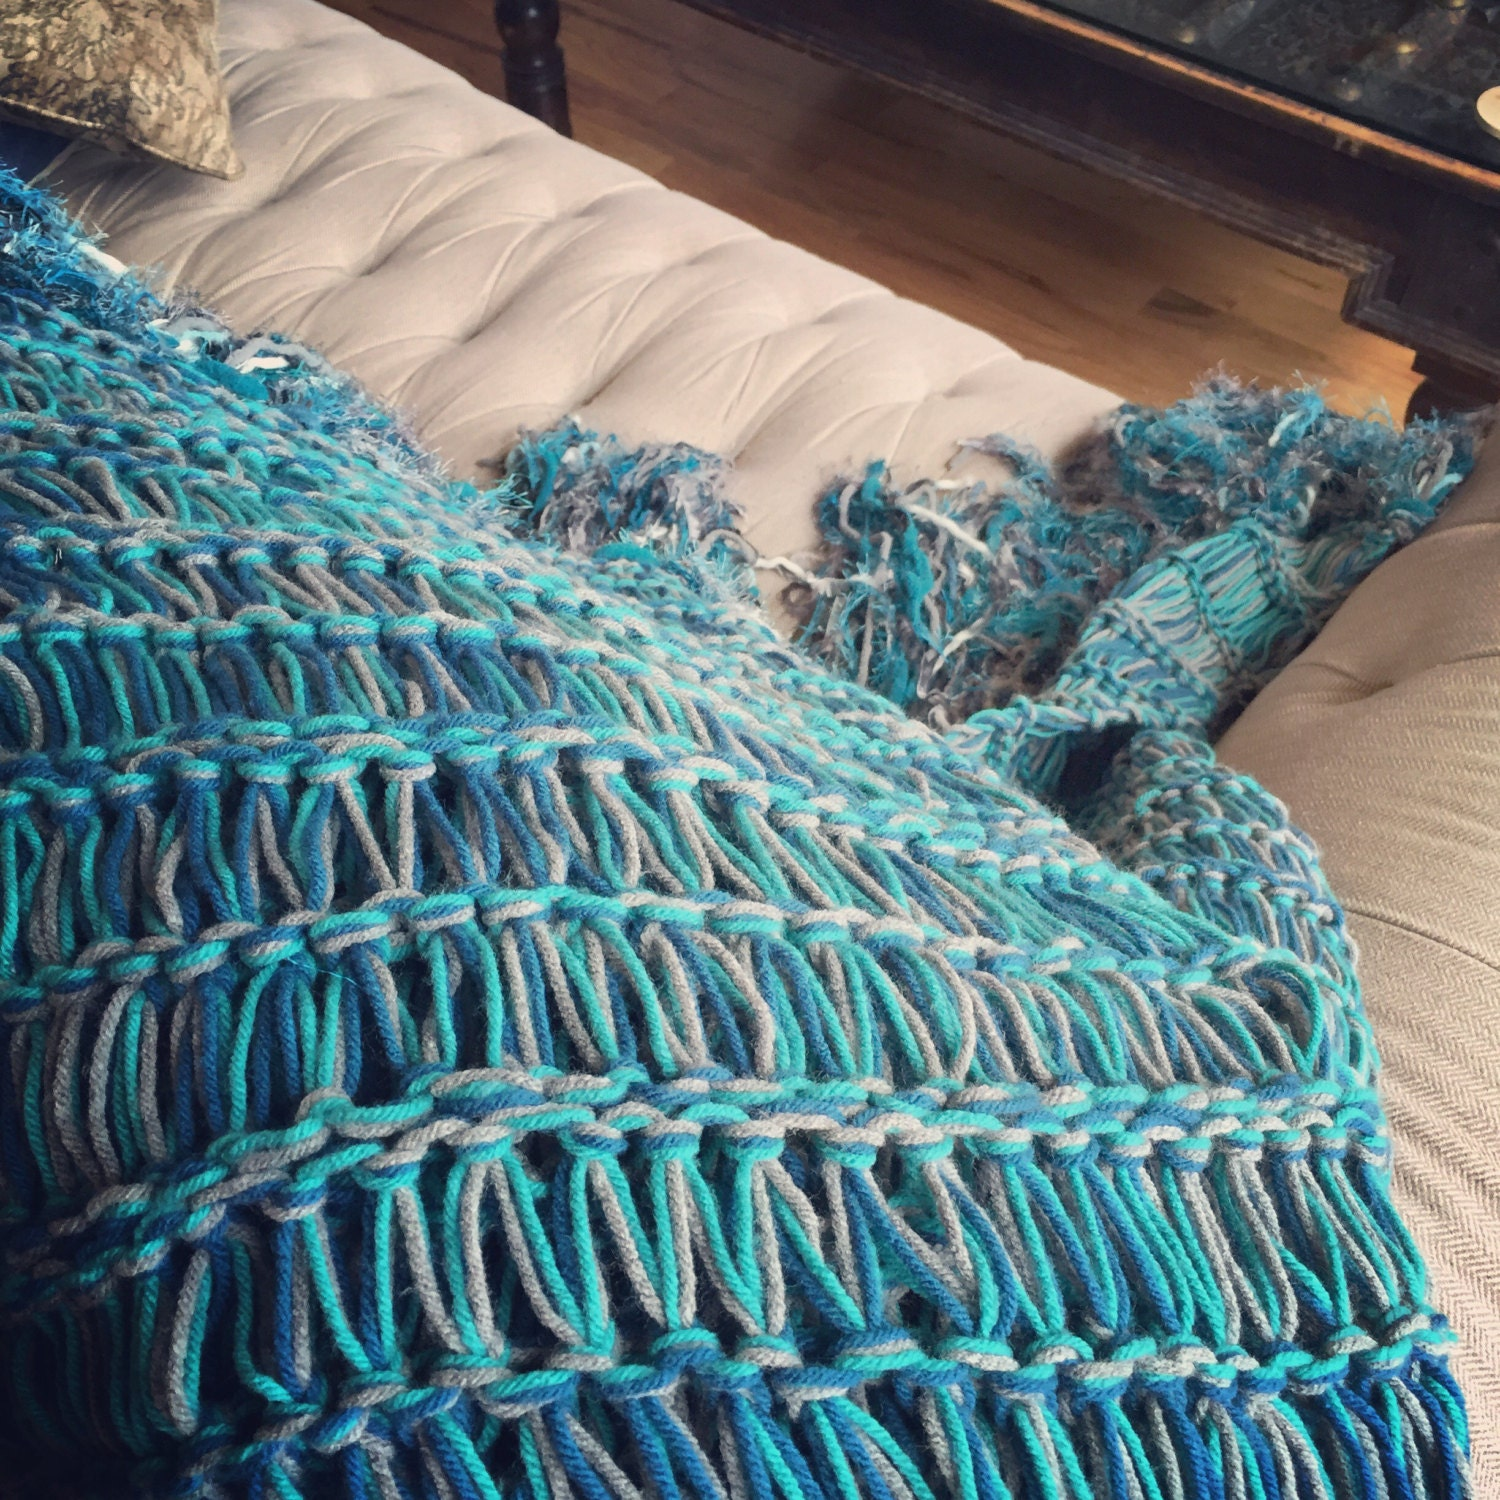 Teal Decor Afghan Teal Blue Furniture Throw Blanket With Navy